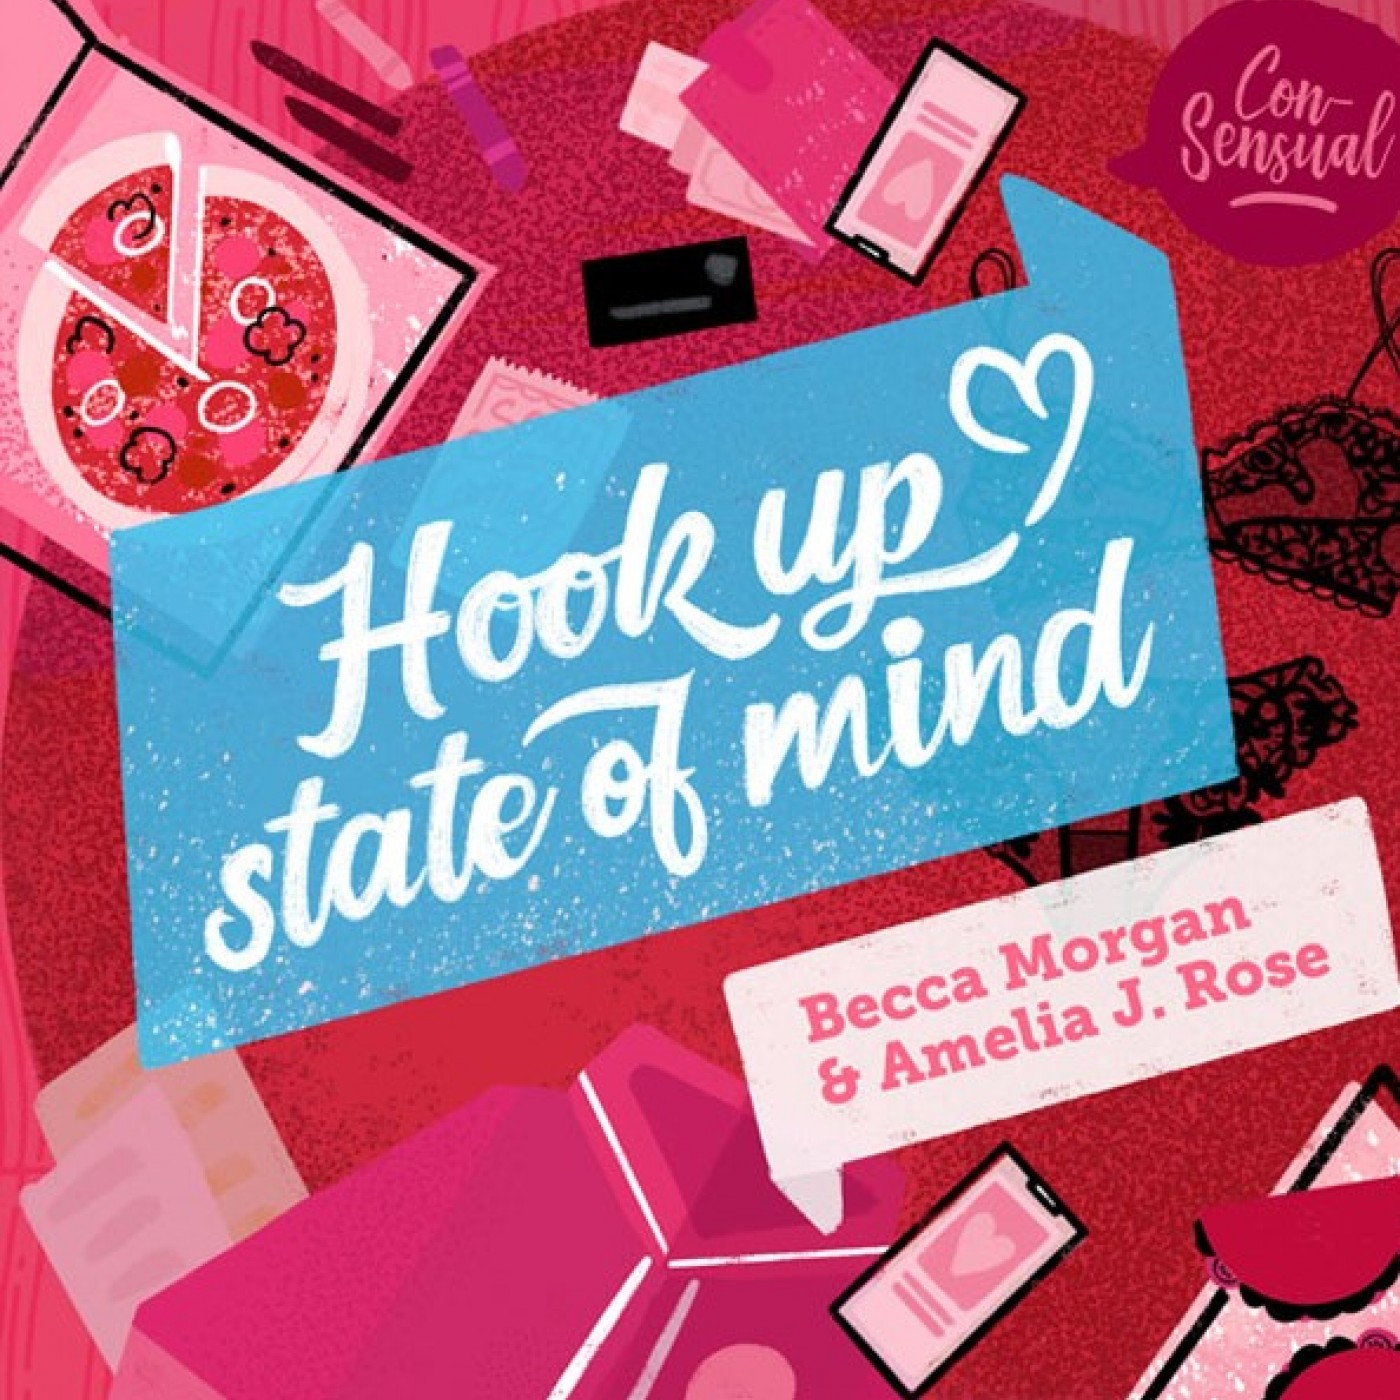 SEASON TWO TRAILER: HOOKUP STATE OF MIND